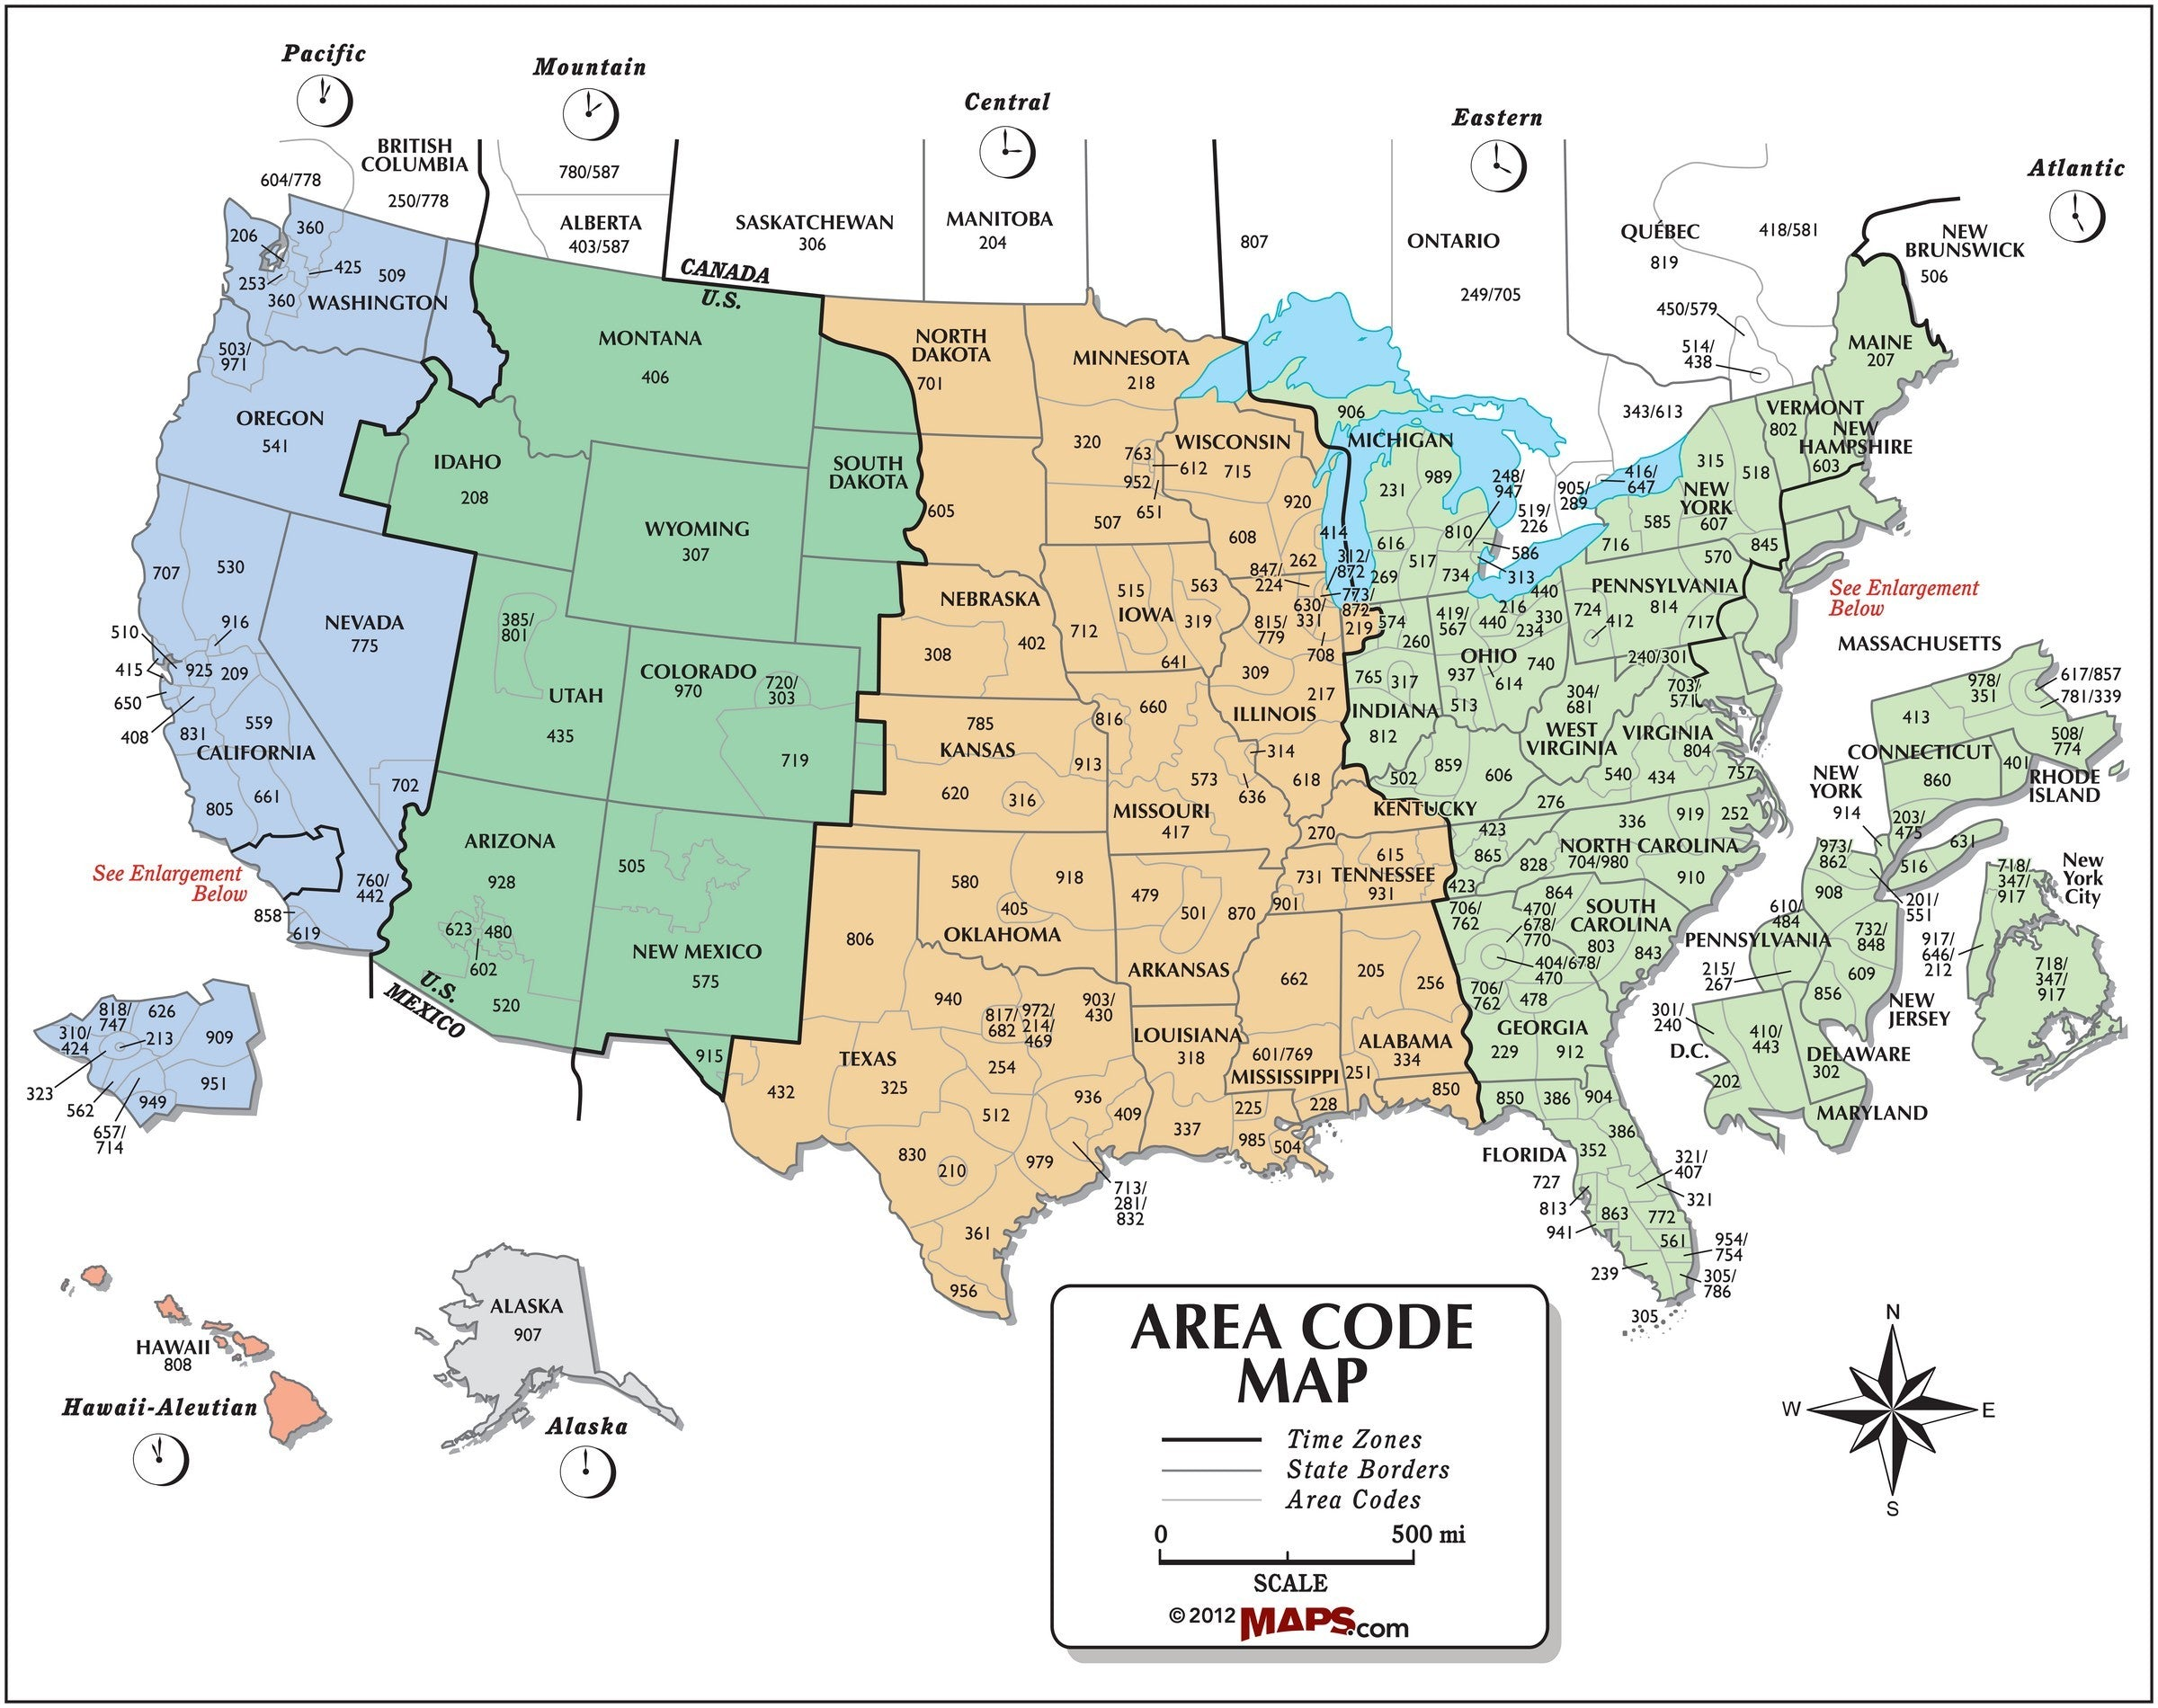 USA Area Code and Time Zone Wall Map United States Area Map on ghana area map, plains area map, us and canada time zone map, call area map, german area map, seattle university area map, mountaineer country area map, madagascar area map, sand hill area map, southwest area map, uzbekistan area map, panhandle area map, rhode island area map, international area map, west tennessee area map, india area map, north america area map, qatar area map, sonoran desert area map, kurdistan area map,